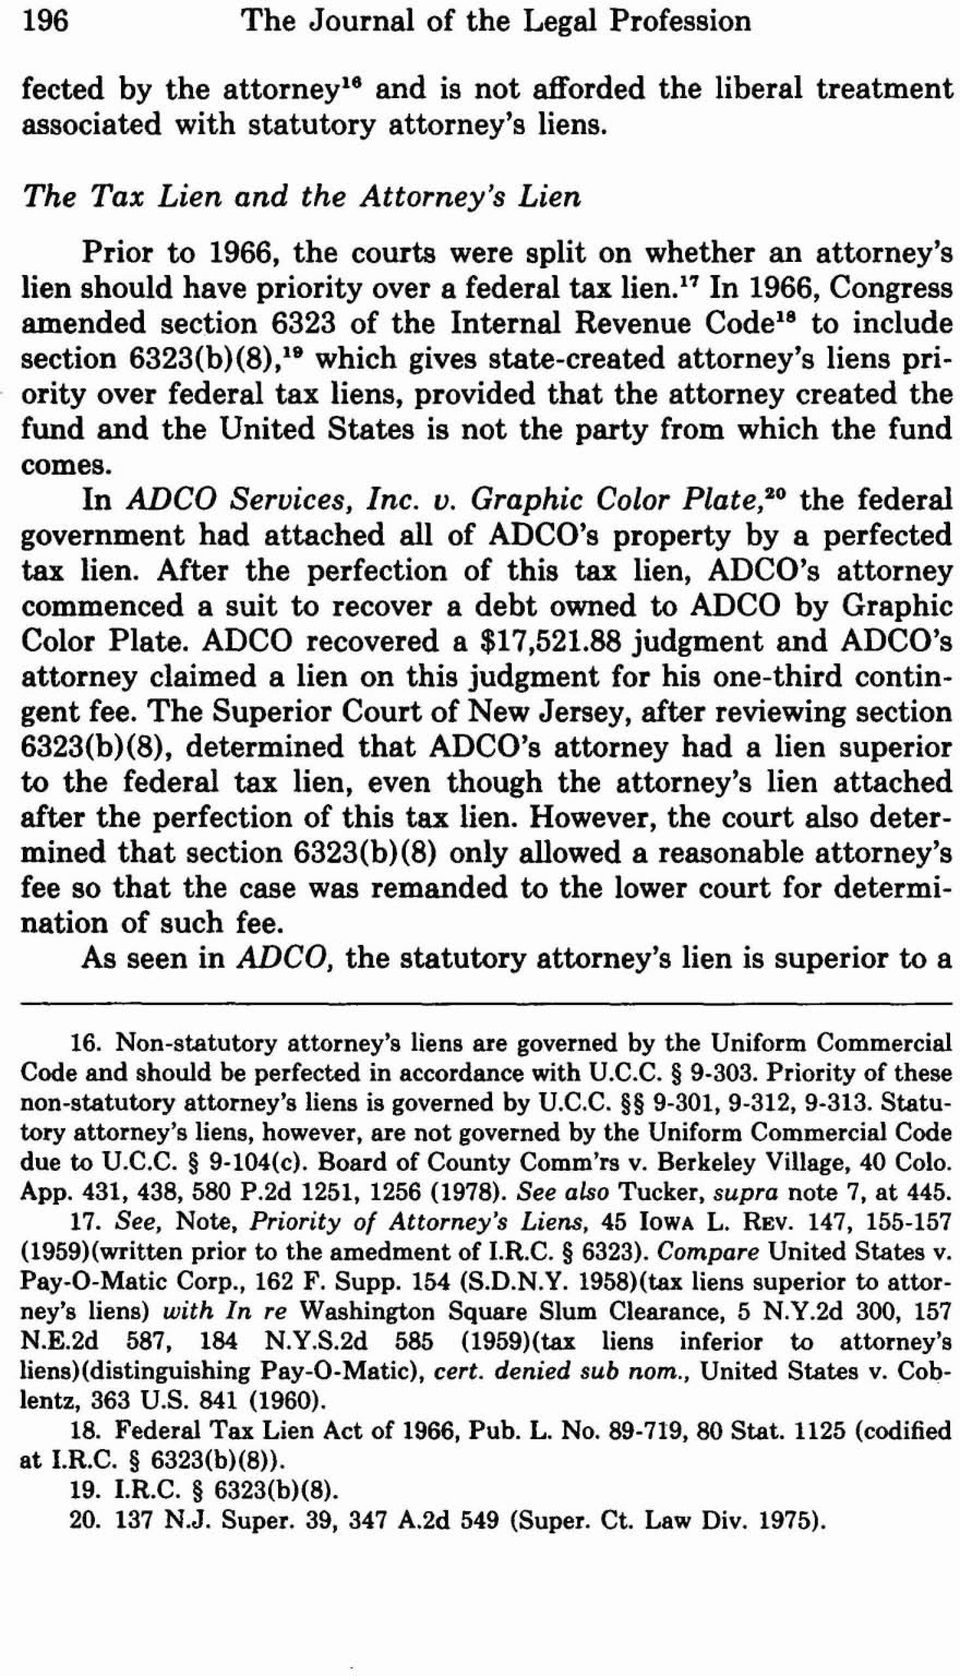 17 In 1966, Congress amended section 6323 of the Internal Revenue Codela to include section 6323(b)(8),le which gives state-created attorney's liens priority over federal tax liens, provided that the